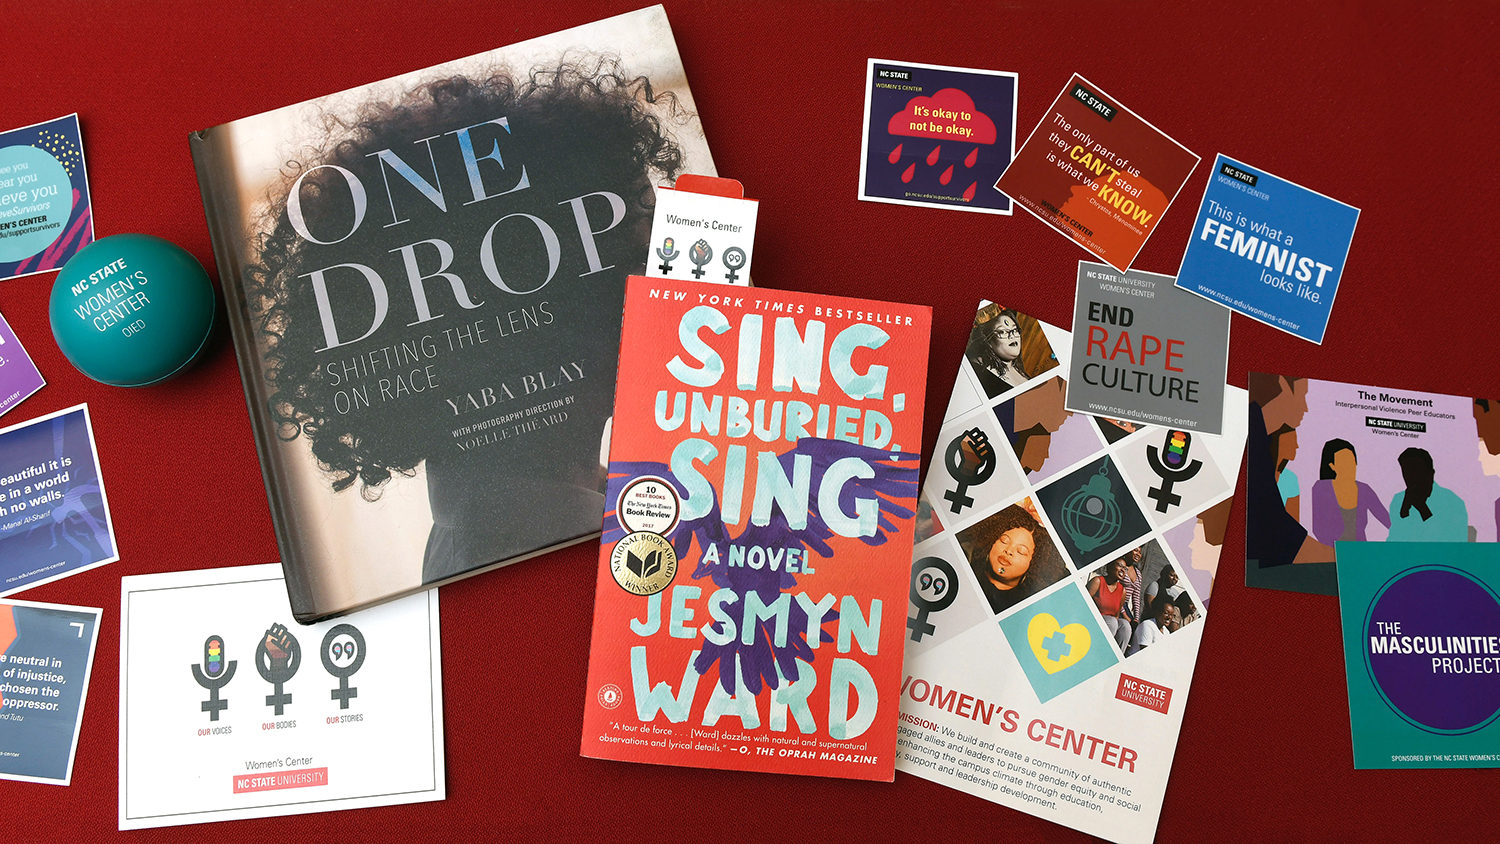 A flat lay image that includes Women's Center stickers, flyers and a copy of the book Sing, Unburied, Sing.